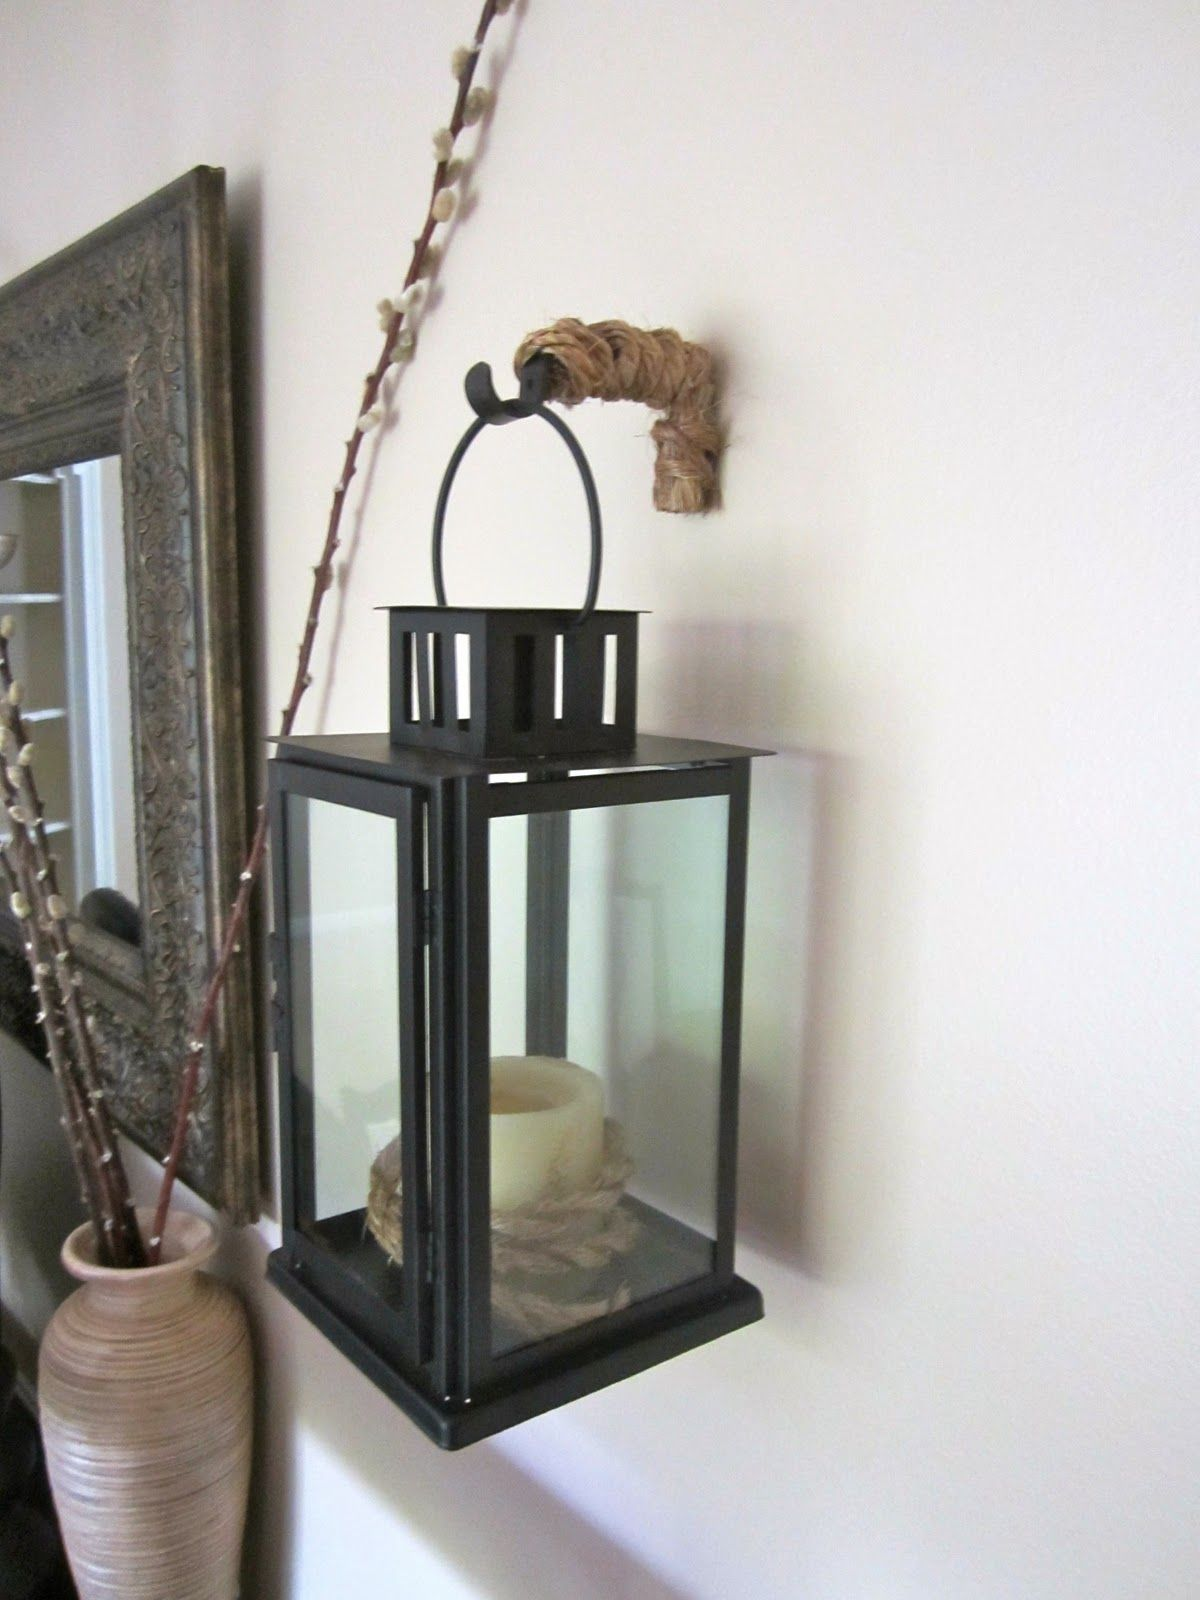 Repurposing Old Curtain Rod Bracket To Hold Lanterns On Wall